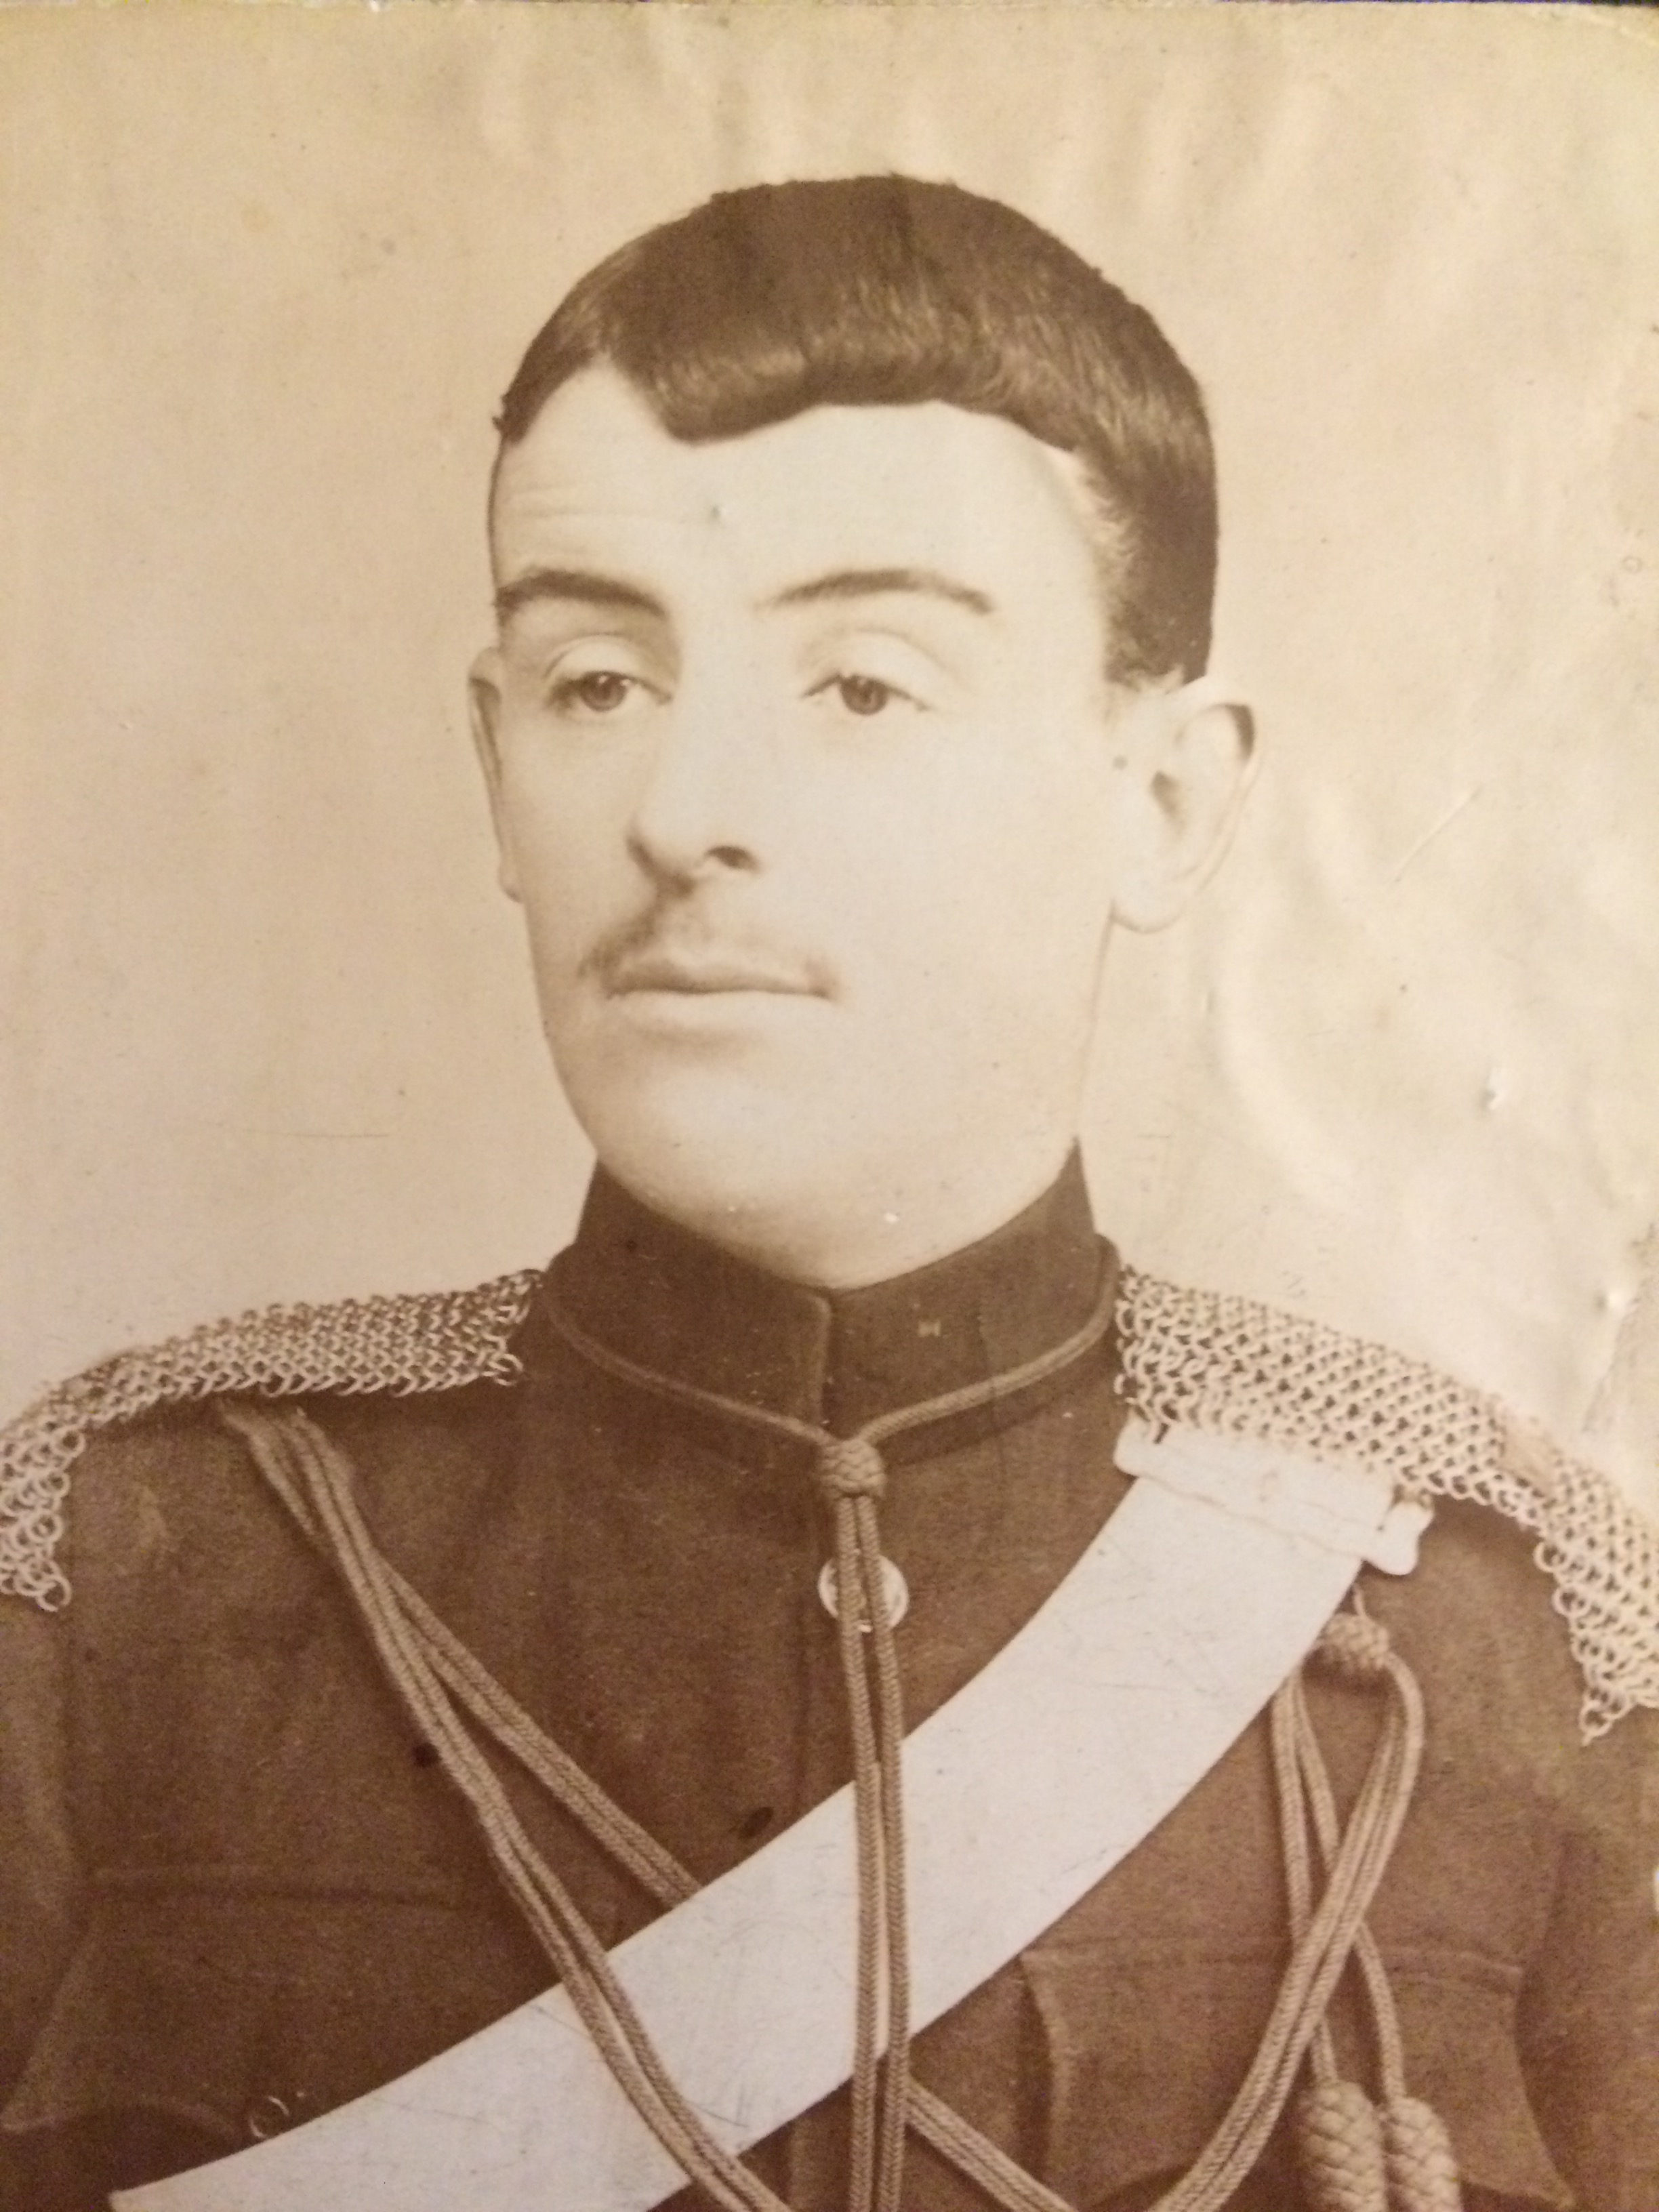 Lance Corporal William Bullen